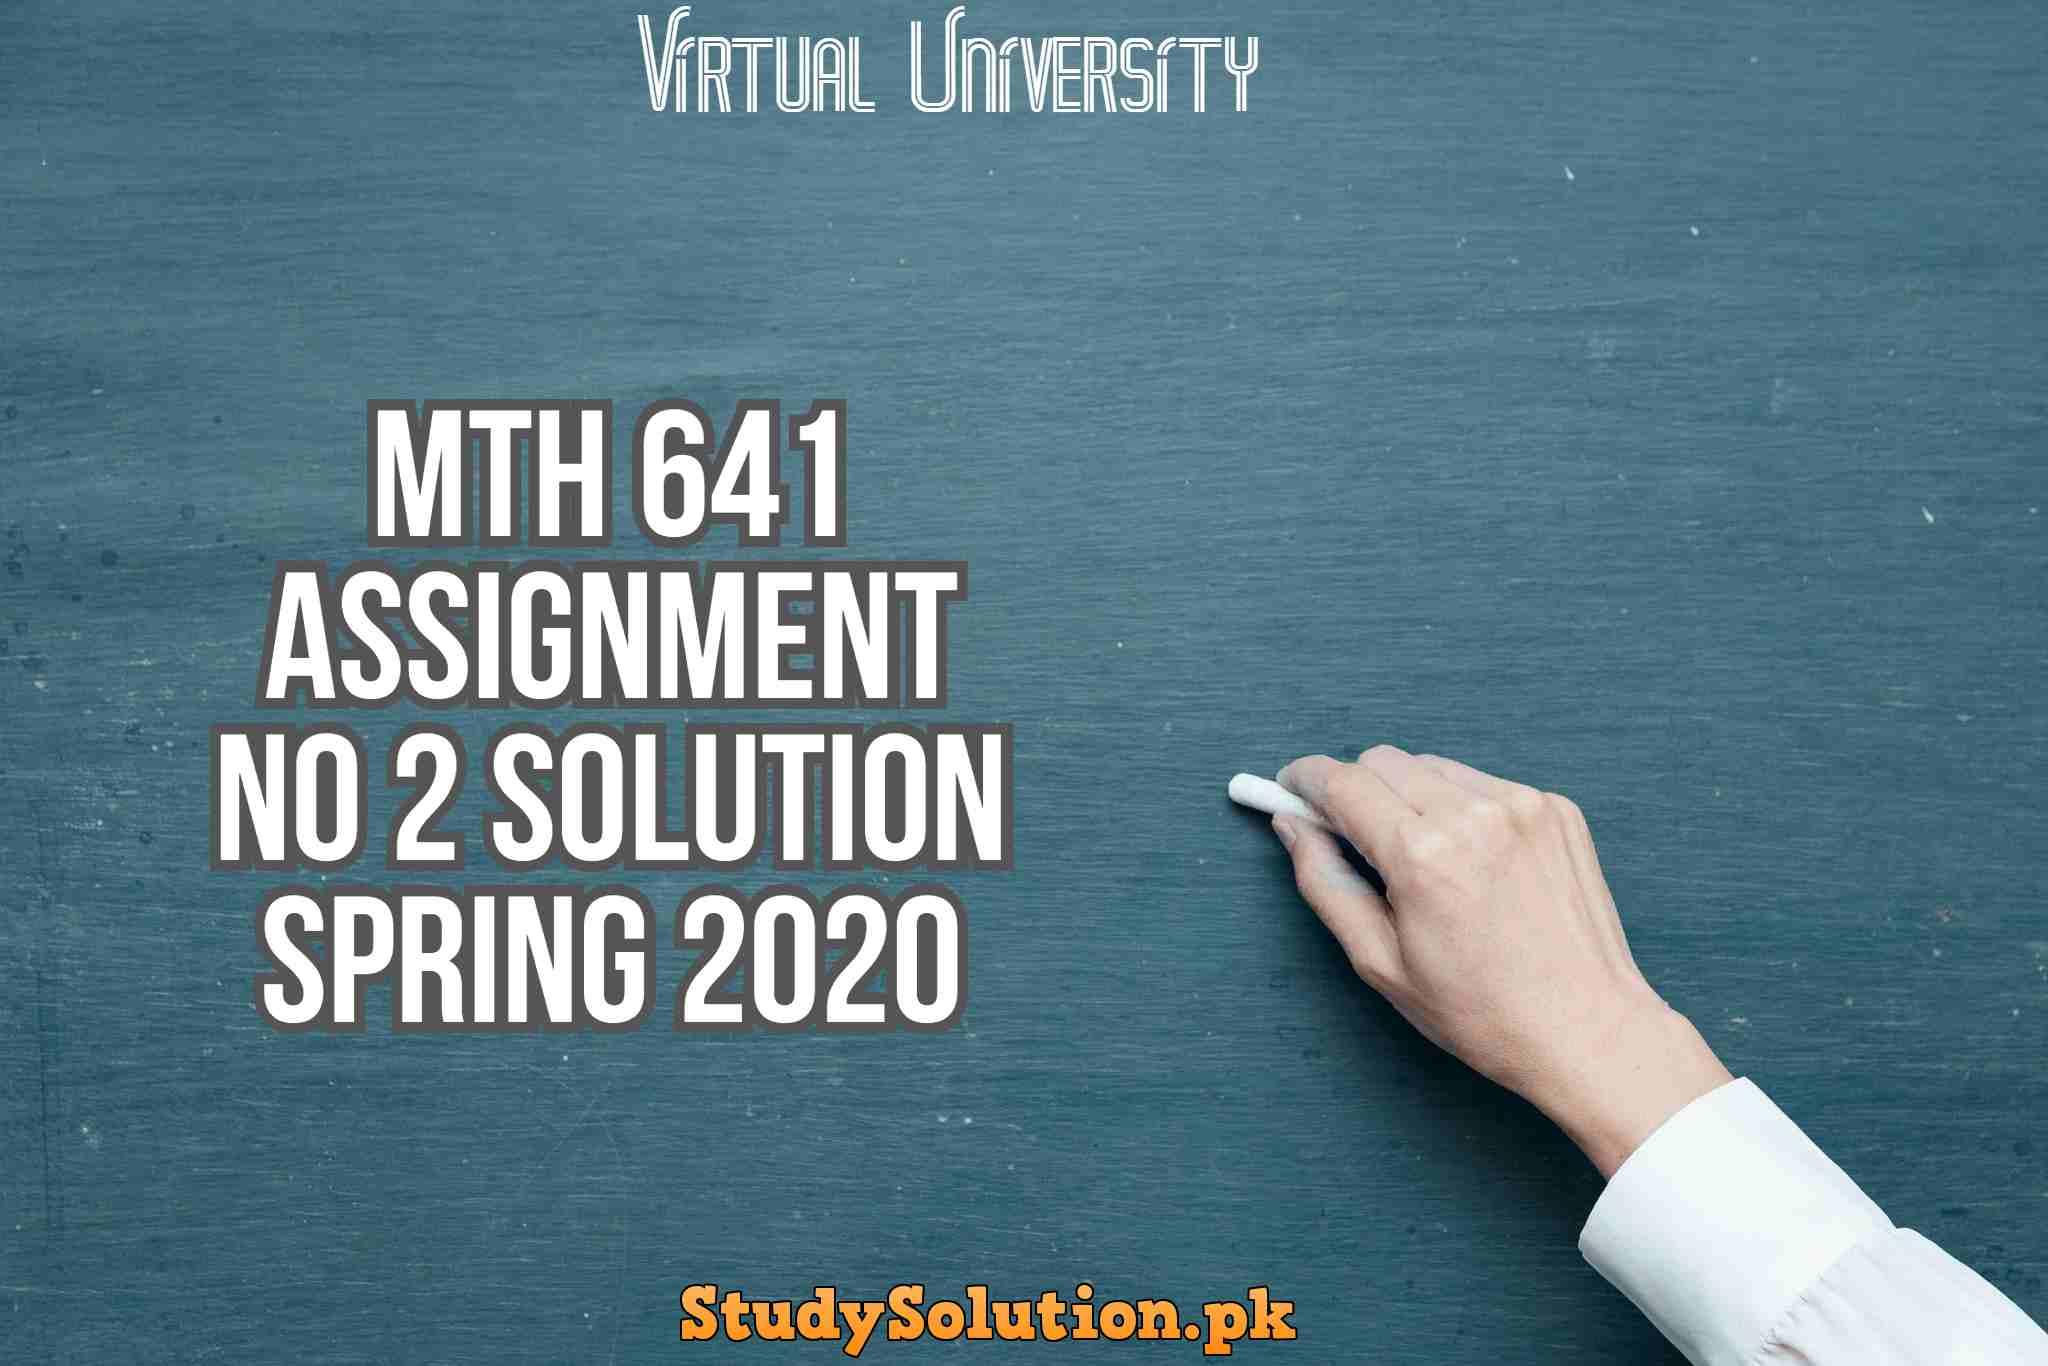 MTH 641 Assignment No 2 Solution Spring 2020